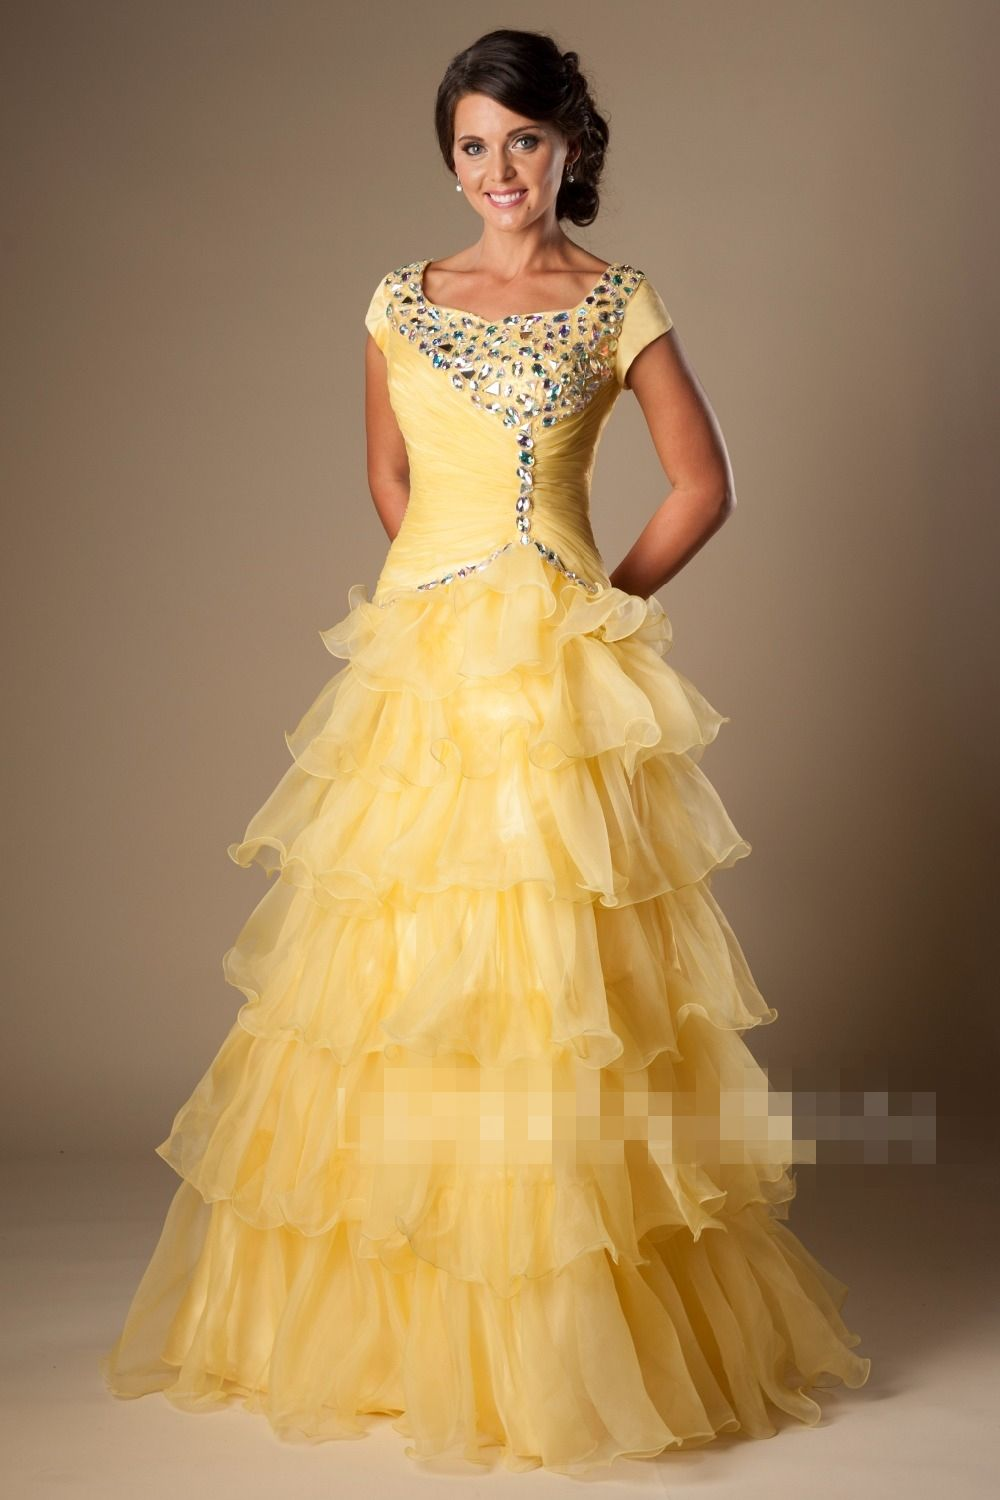 Cheap modest prom dress buy quality prom dresses directly from